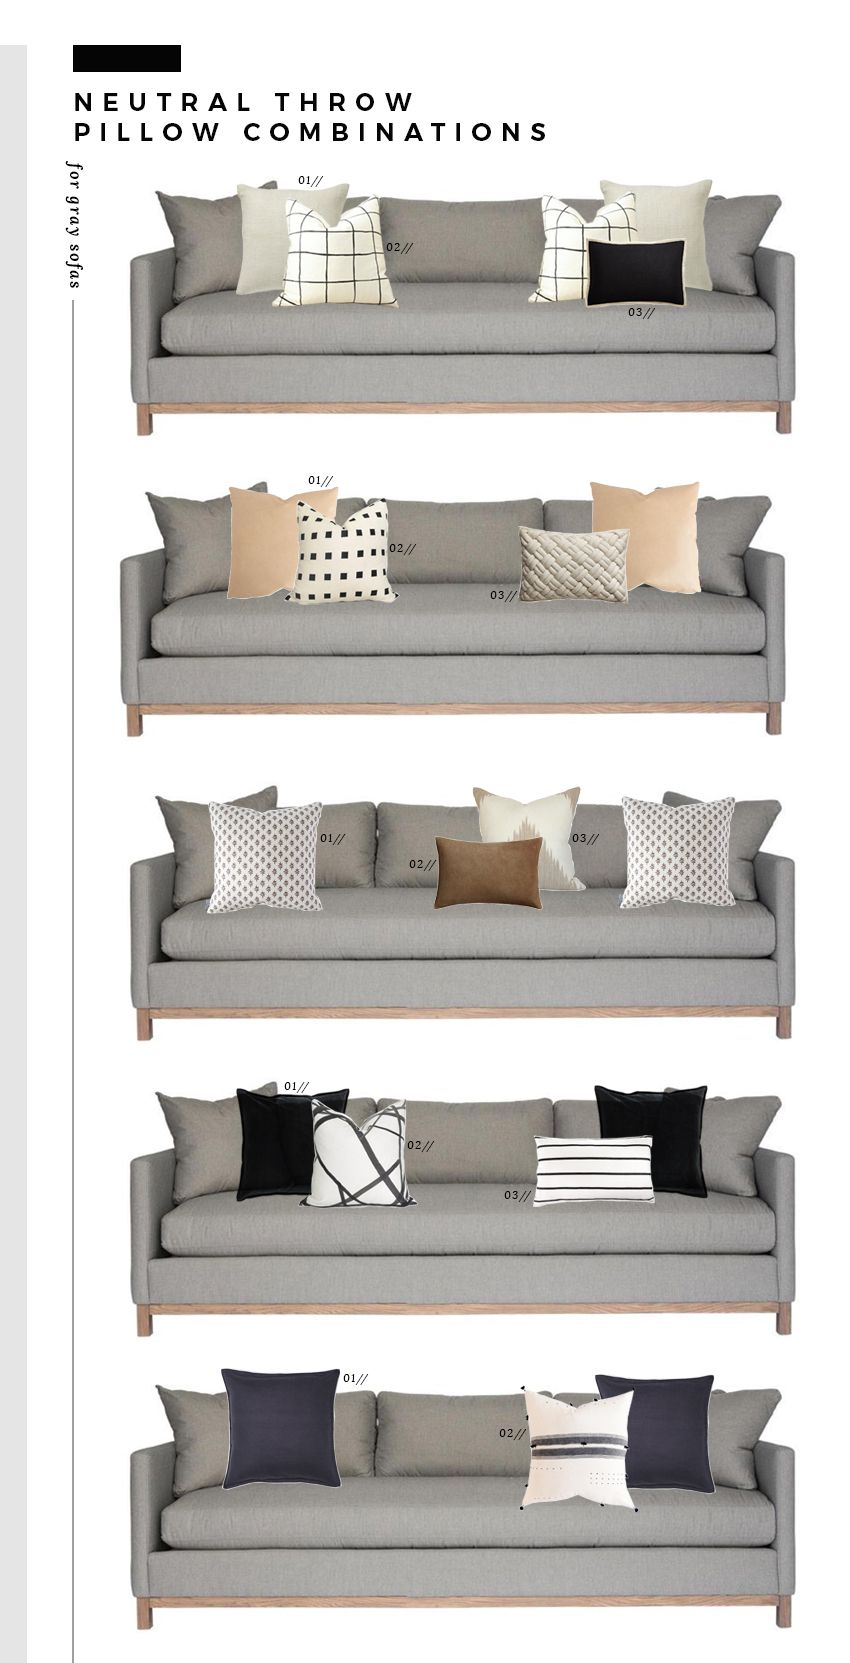 Neutral Throw Pillow Combinations For White And Gray Sofas Room For Tuesday Living Room Grey Grey Sofa Living Room Living Room Pillows